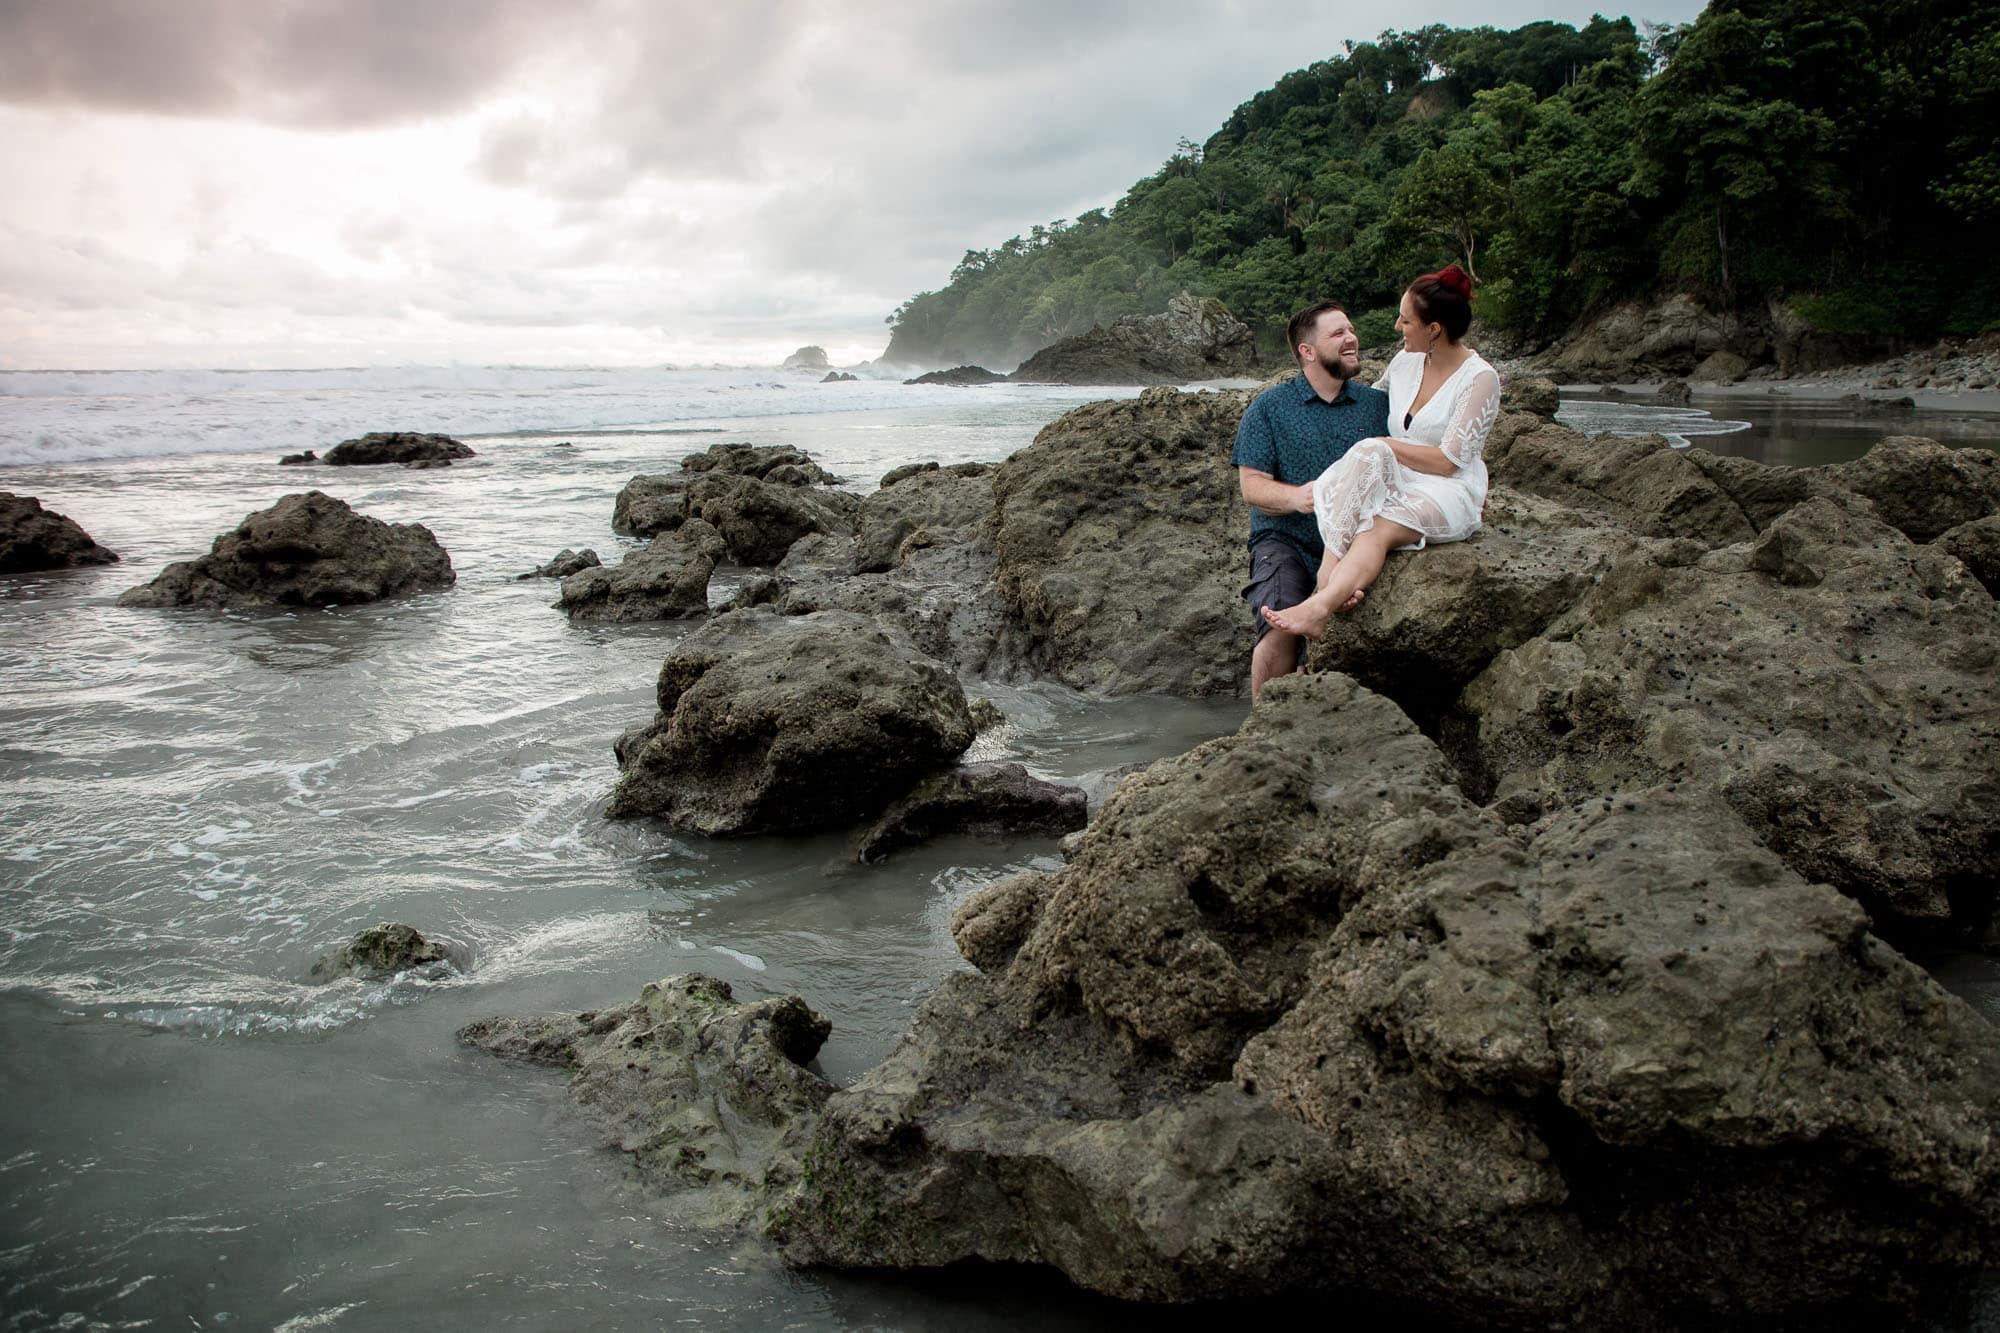 Pre wedding portrait session on the beach where love blooms